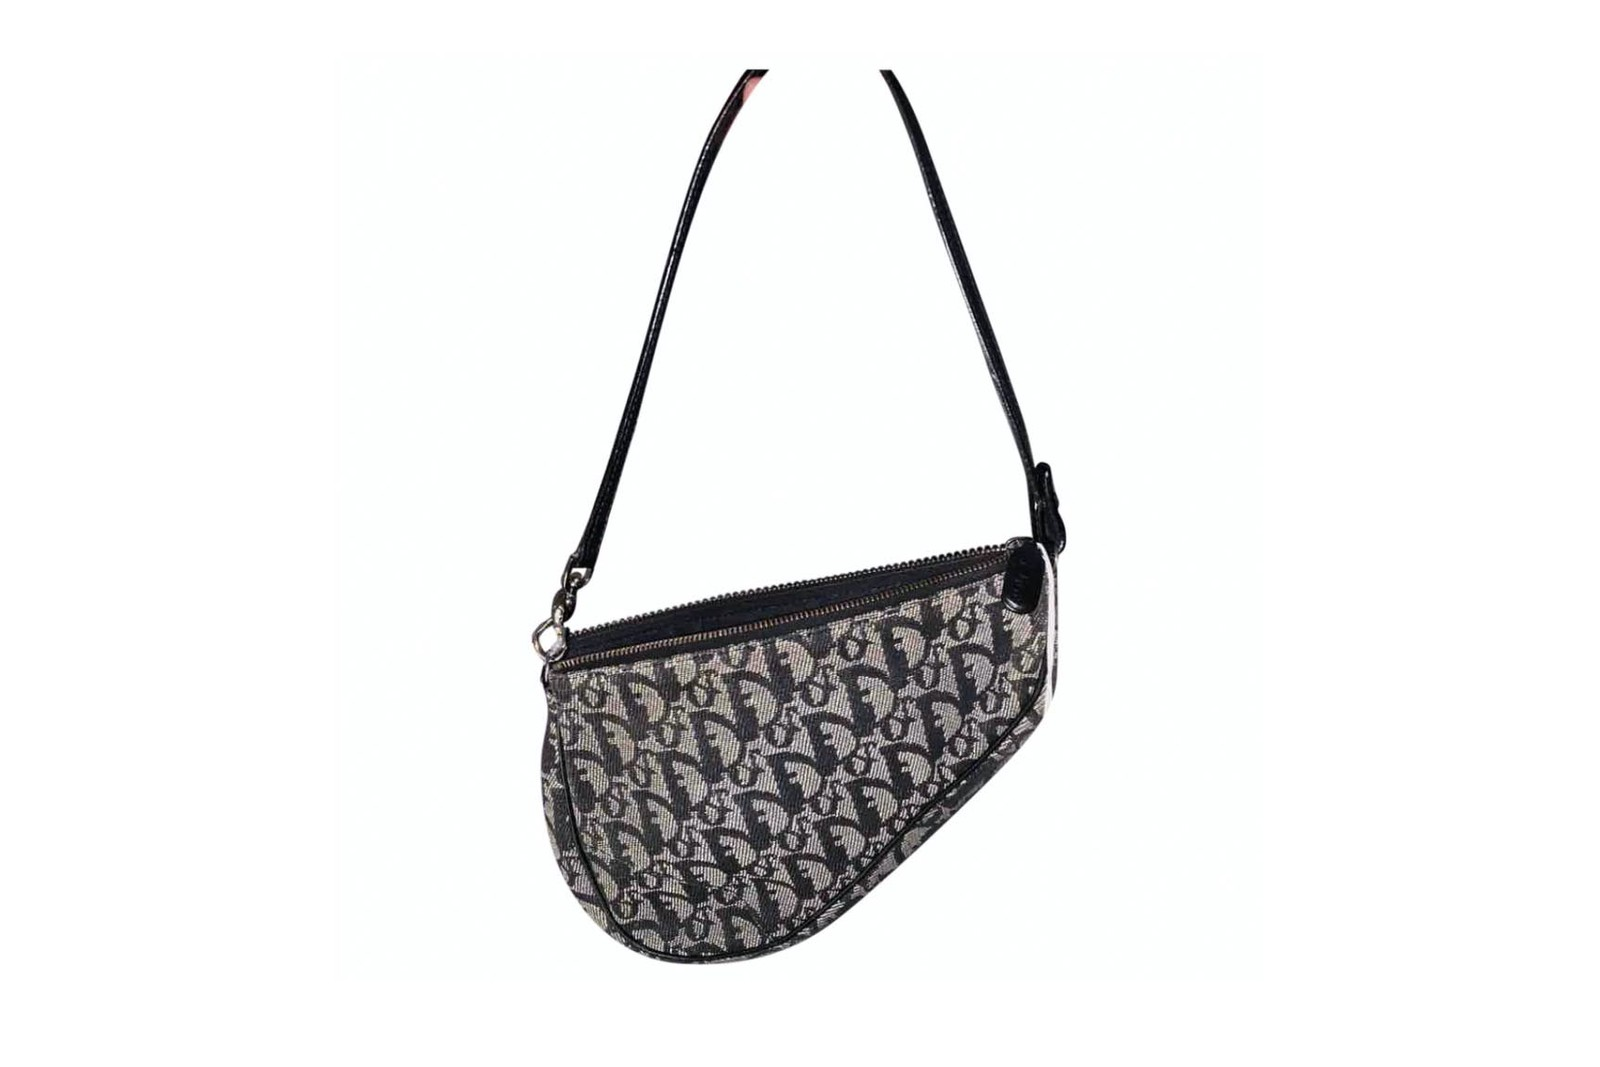 Best Vintage Bags From Dior, Gucci, Fendi and More Holiday Season Sustainable Gifting Ideas Luxury Second Hand Pre-Loved